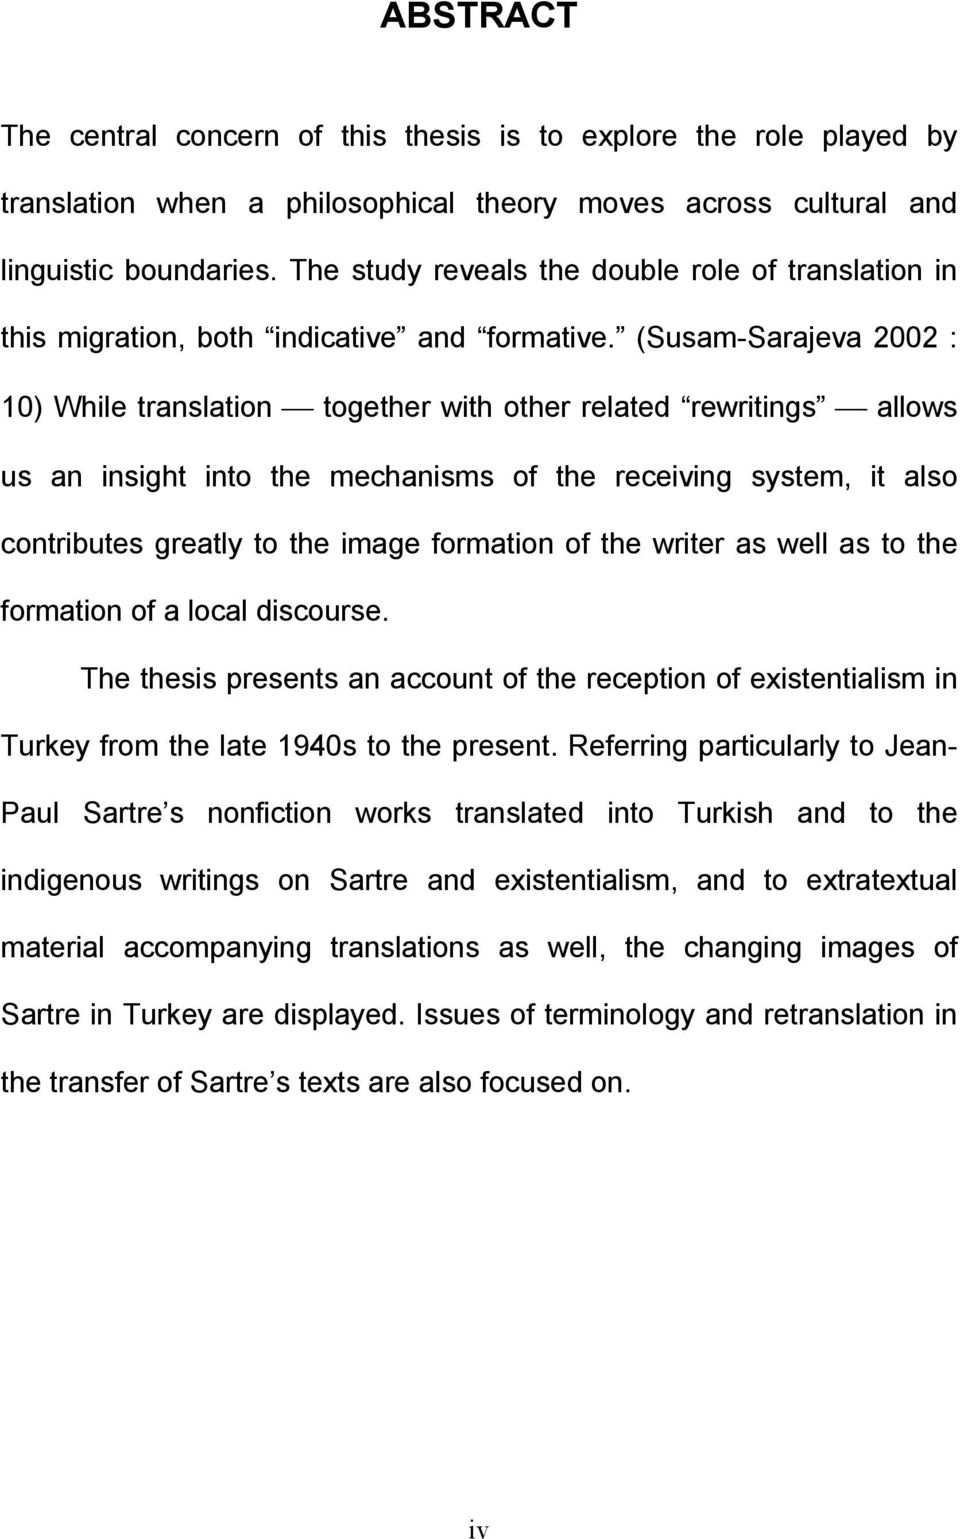 (Susam-Sarajeva 2002 : 10) While translation together with other related rewritings allows us an insight into the mechanisms of the receiving system, it also contributes greatly to the image